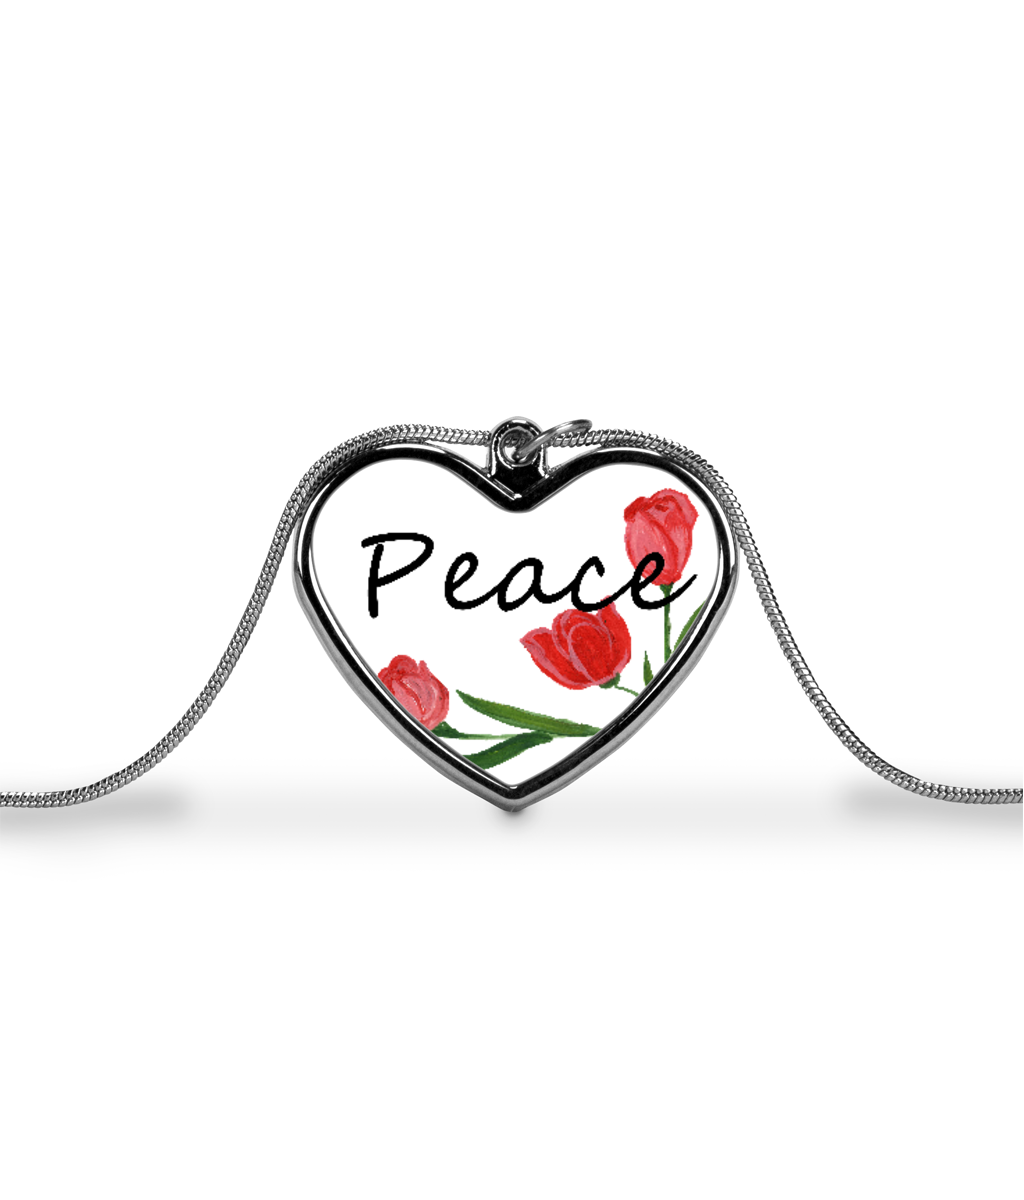 Peace Heart Chain for Mental Wellness